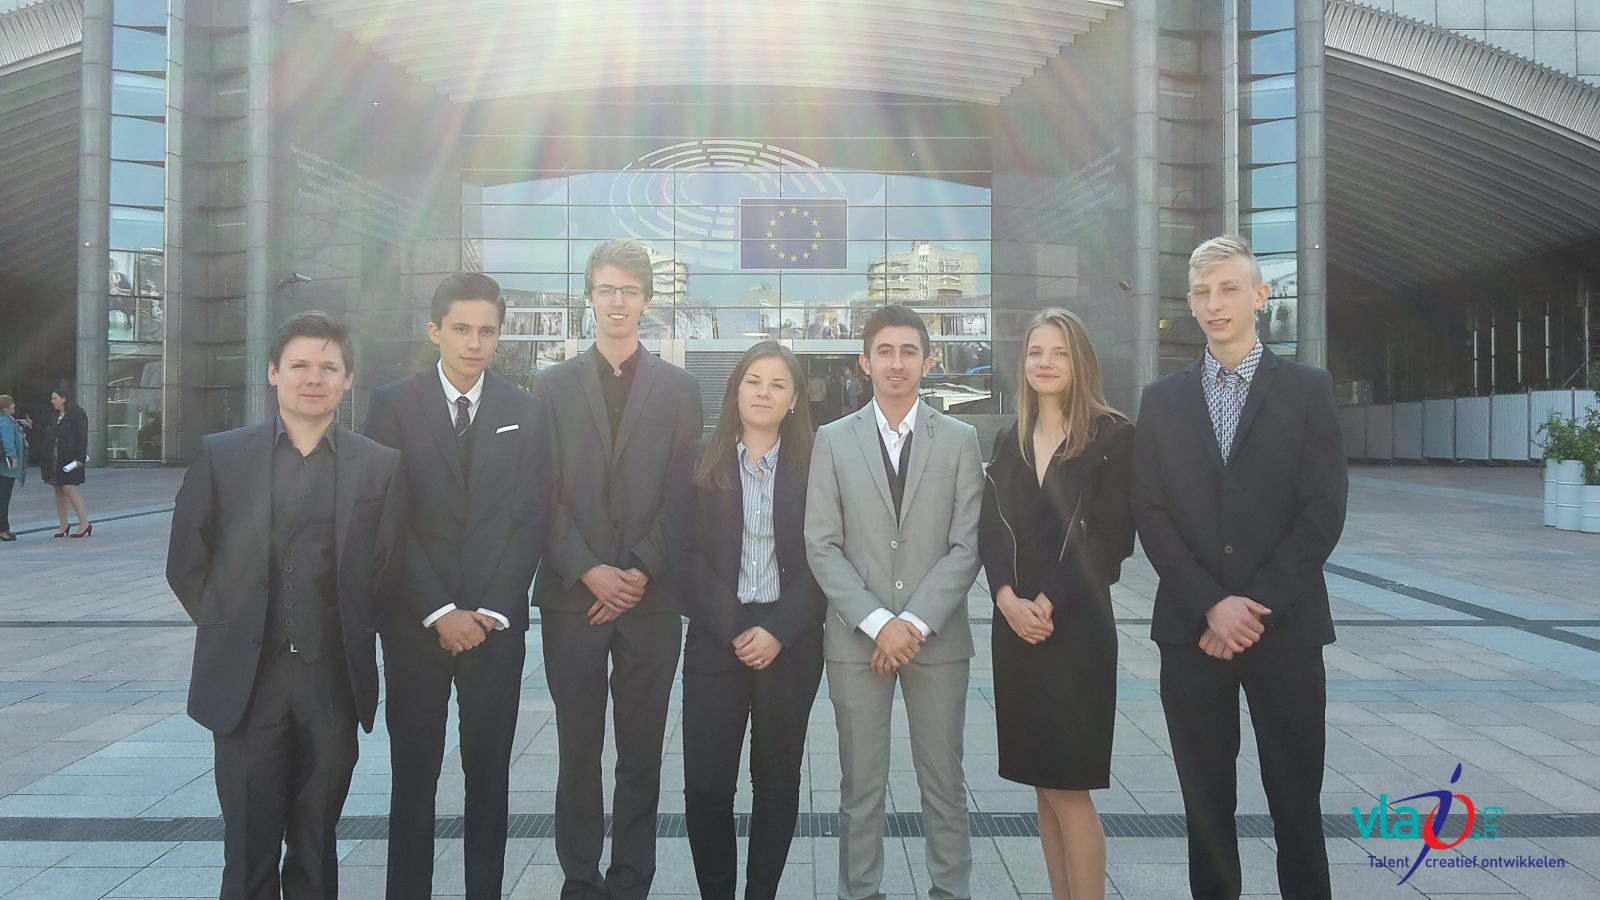 Vlajo-leerlingenteam in top 3 op Europese finale Sci Tech Challenge